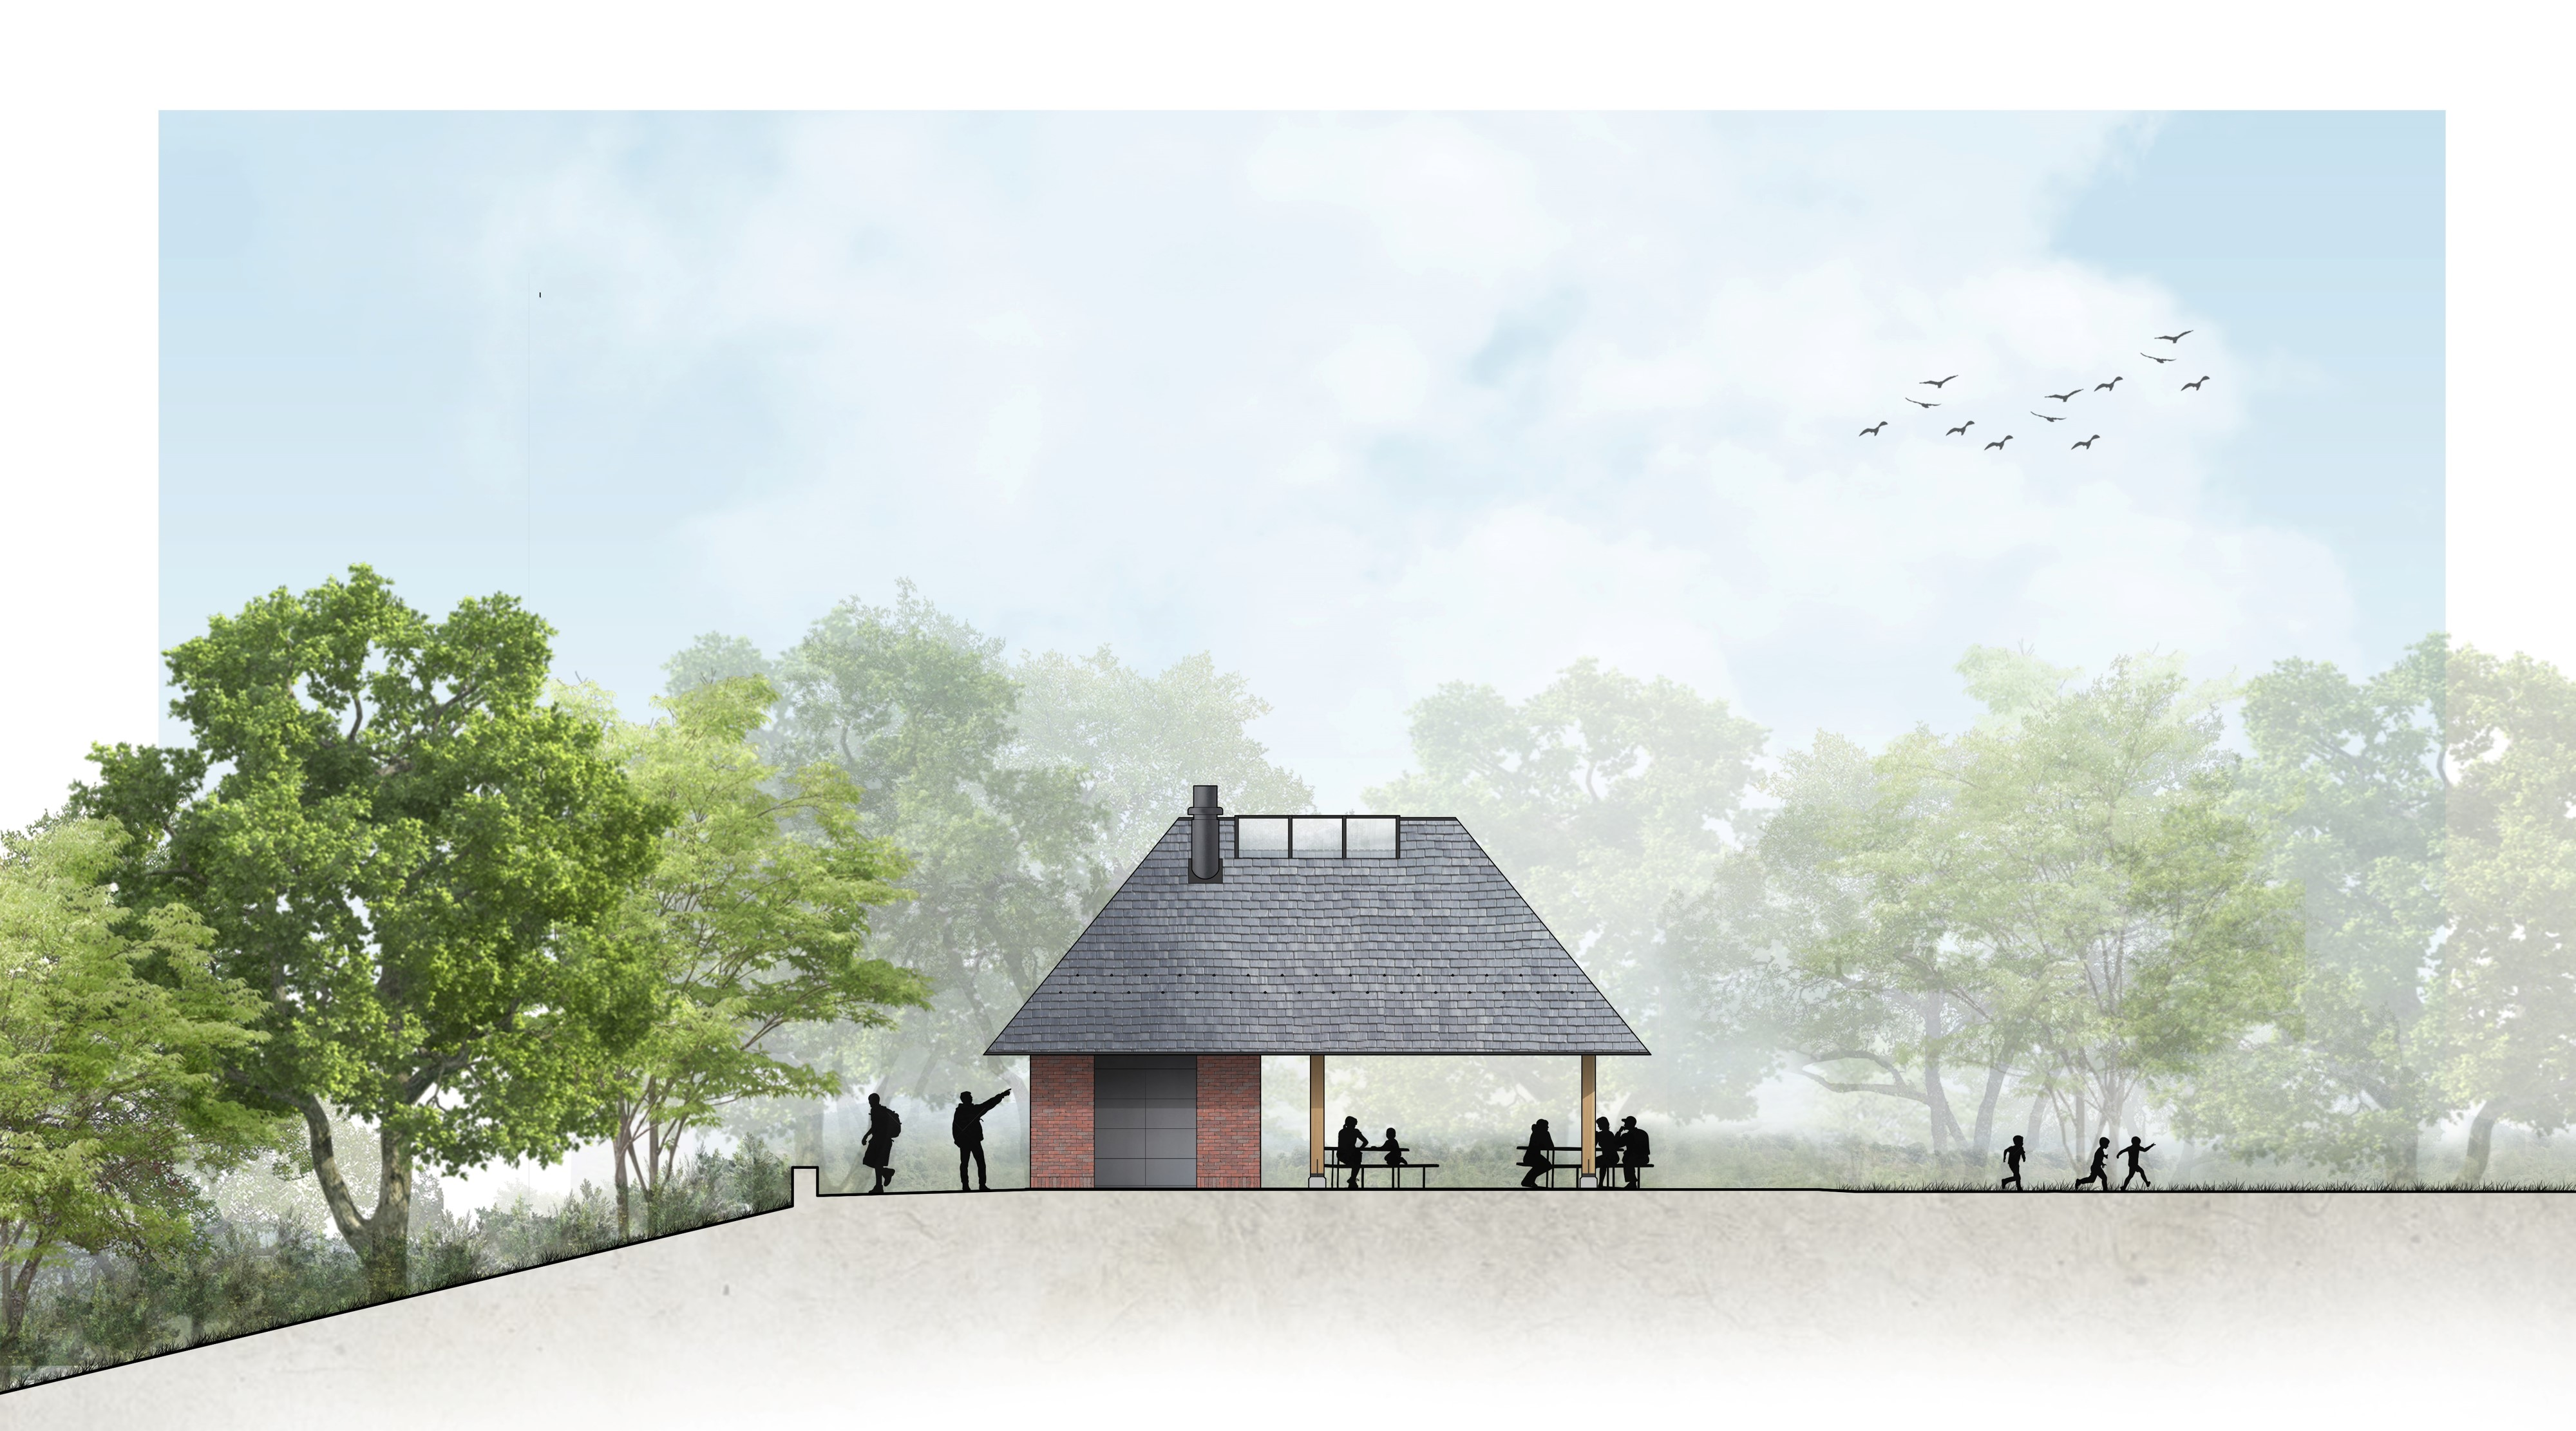 Rendering of new orthophosphate facility at the Sycamore Grove picnic area in Highland Park